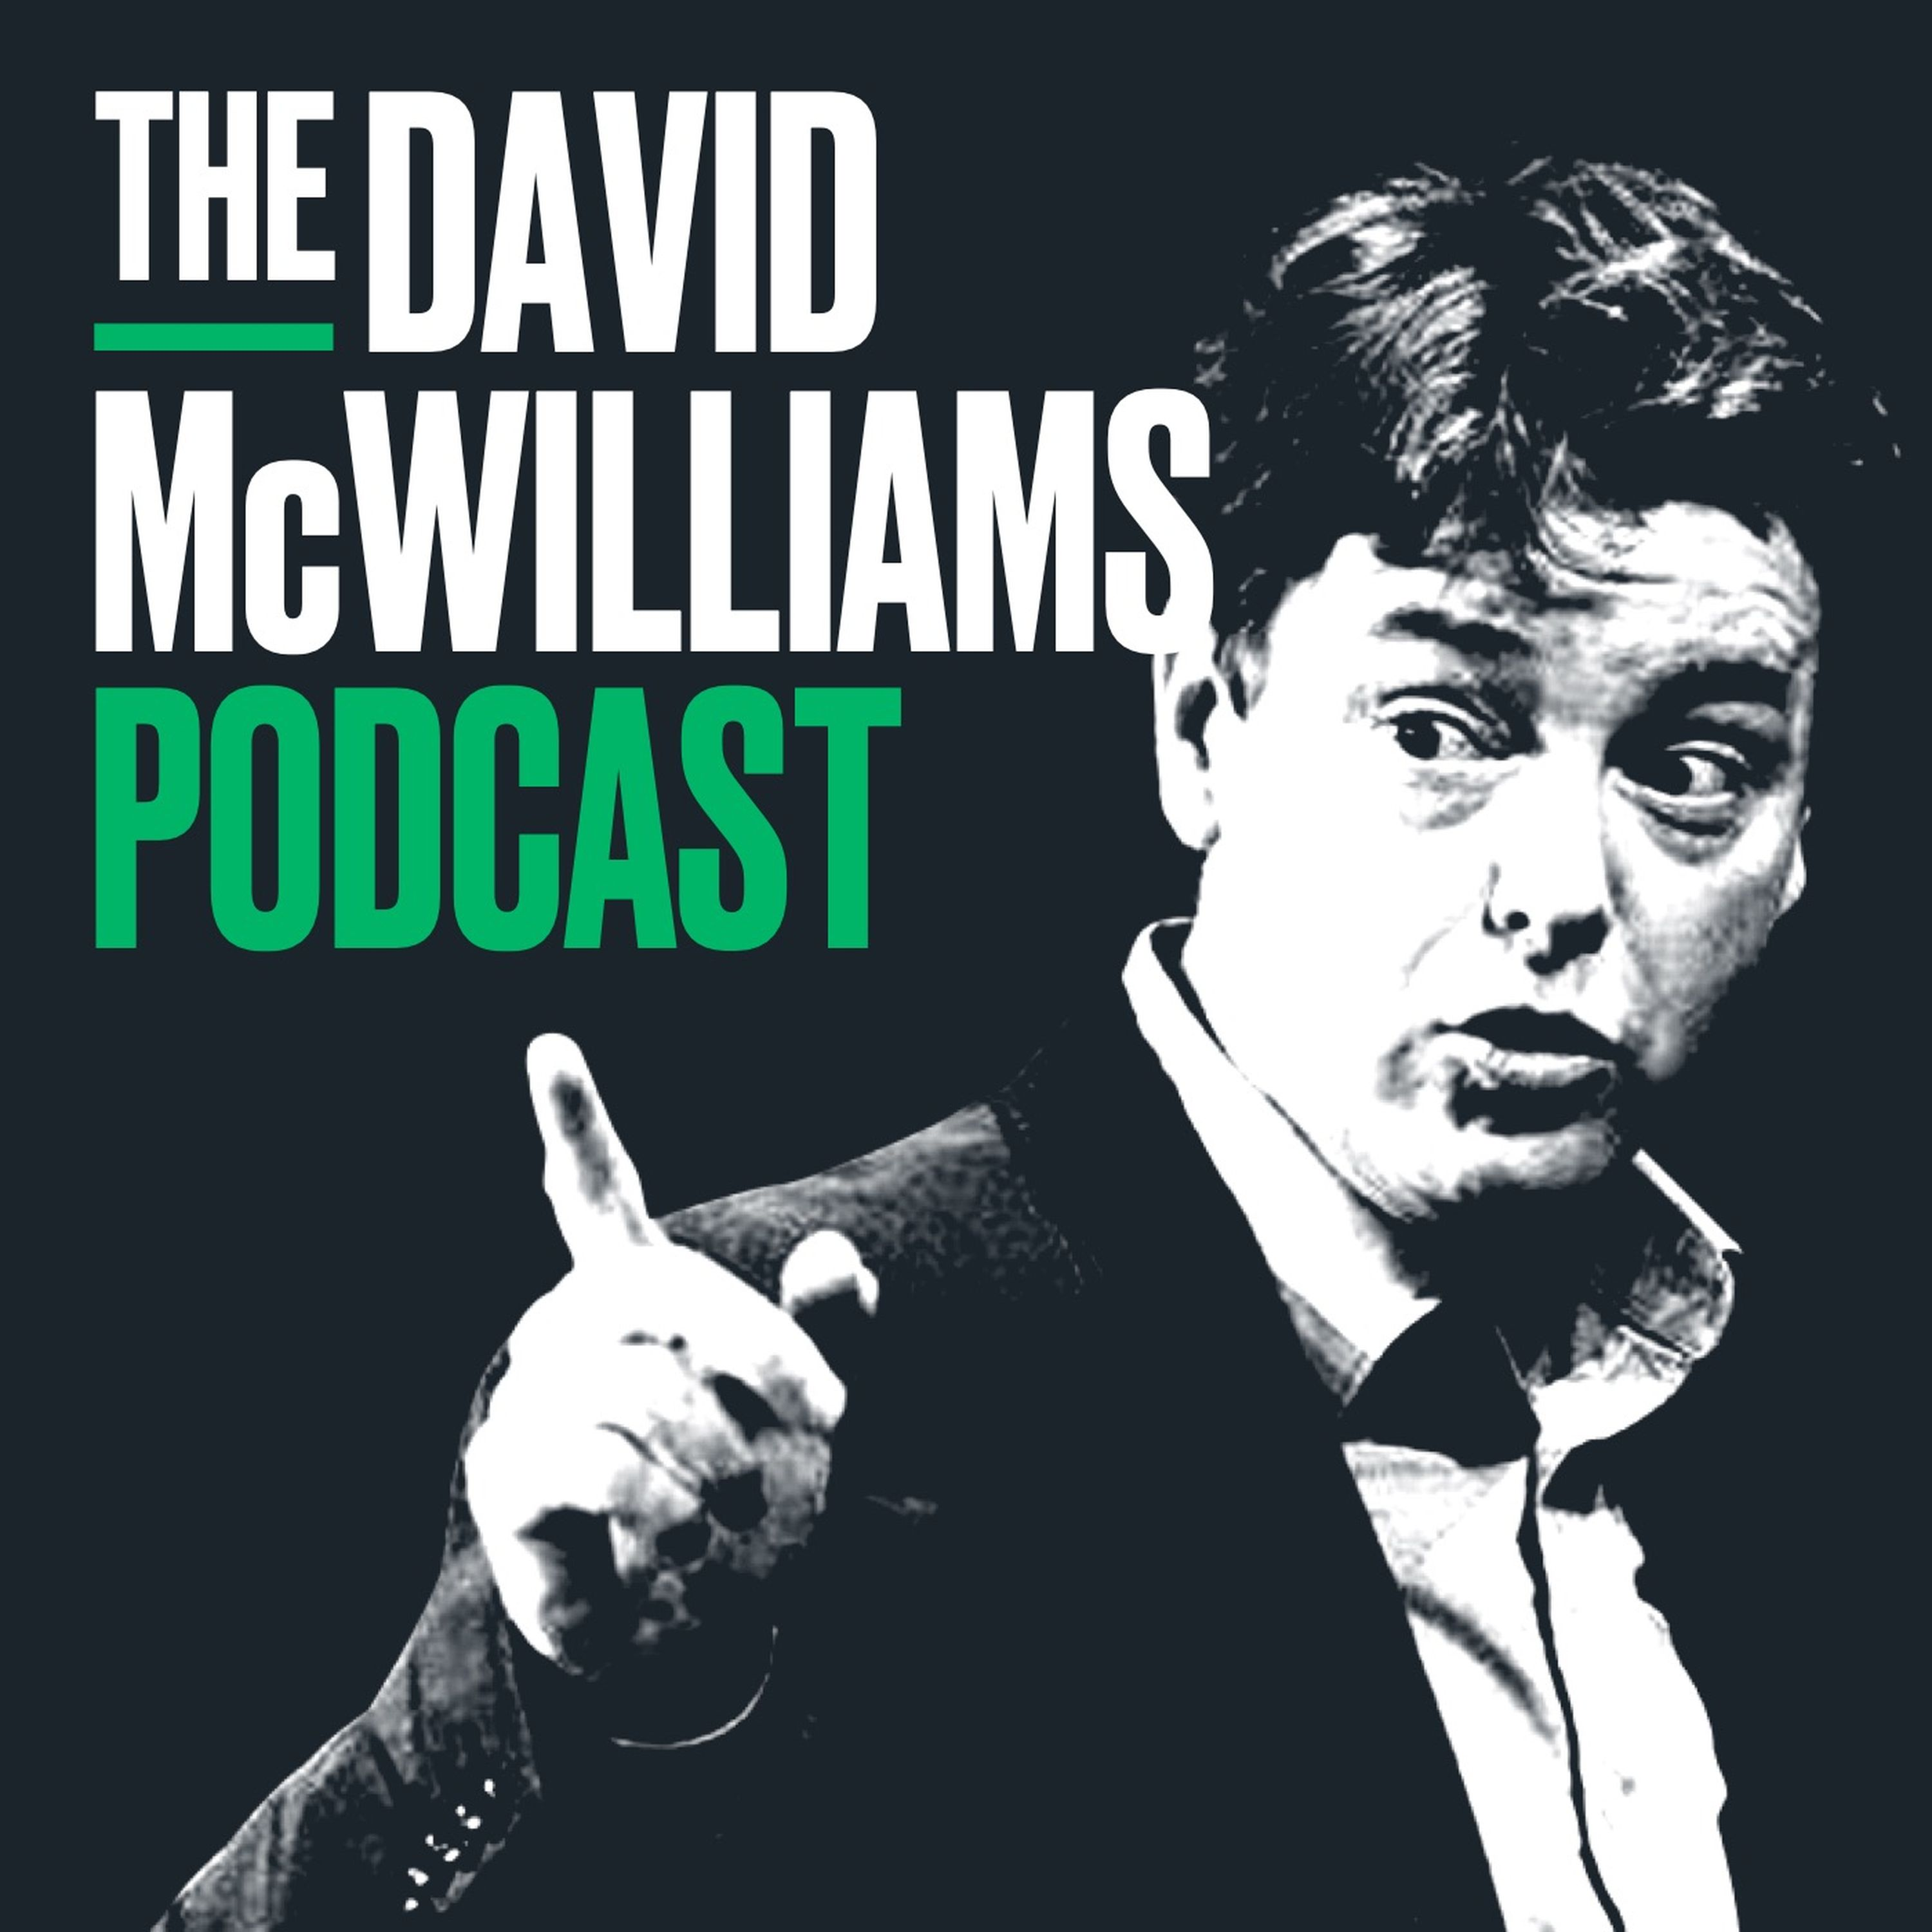 Ireland, Brexit and the Great British Breakoff, from Britsplaing to Explaining and lots more in between!! Enjoy